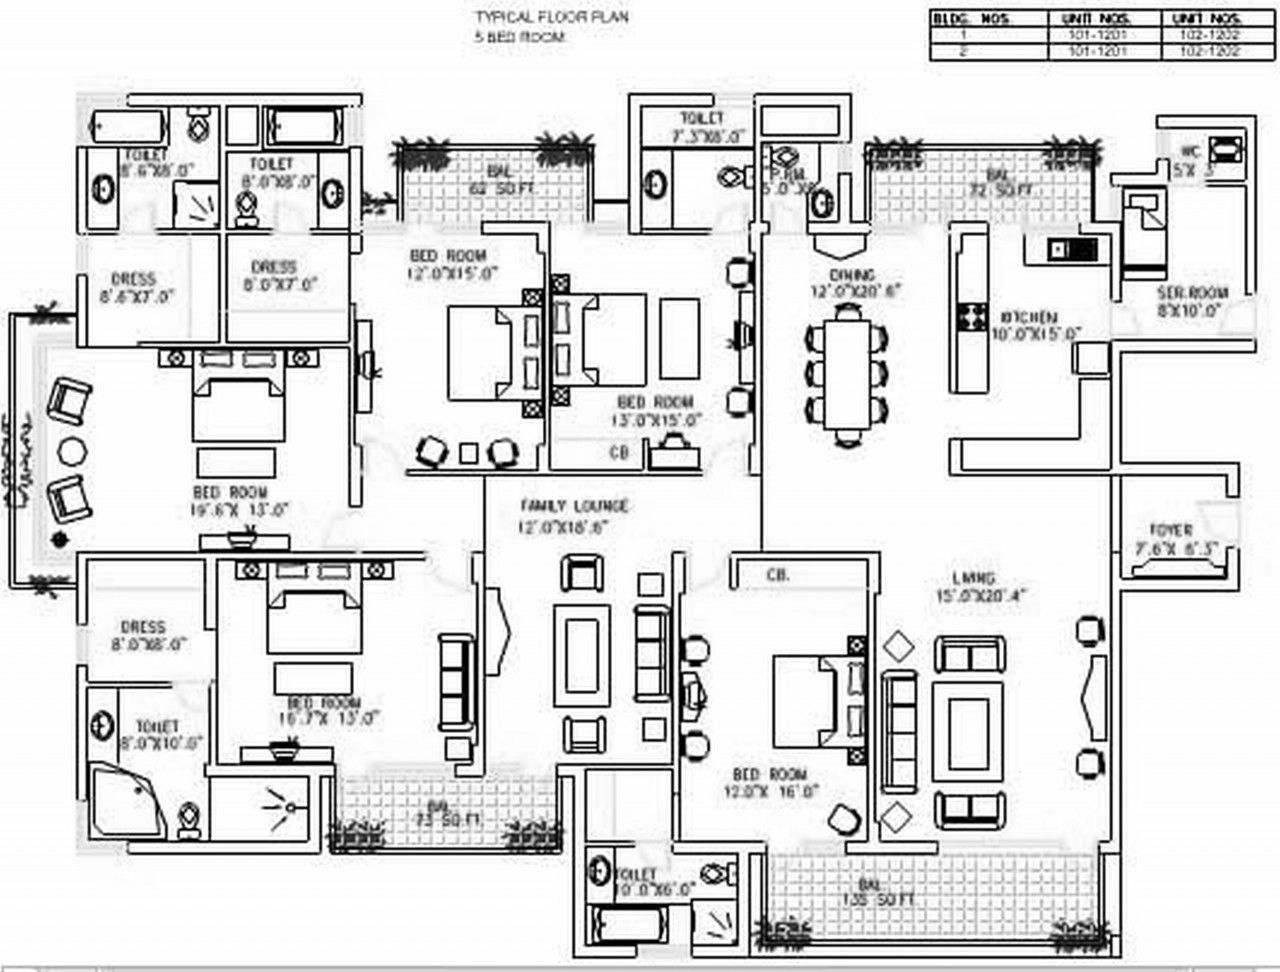 Amazing House Plans Design Ideas With Beuatiful Color And Decoration 5 Bedroom House Plans Terrific Black White House Plan Design Exterior Arquitetura Fachada